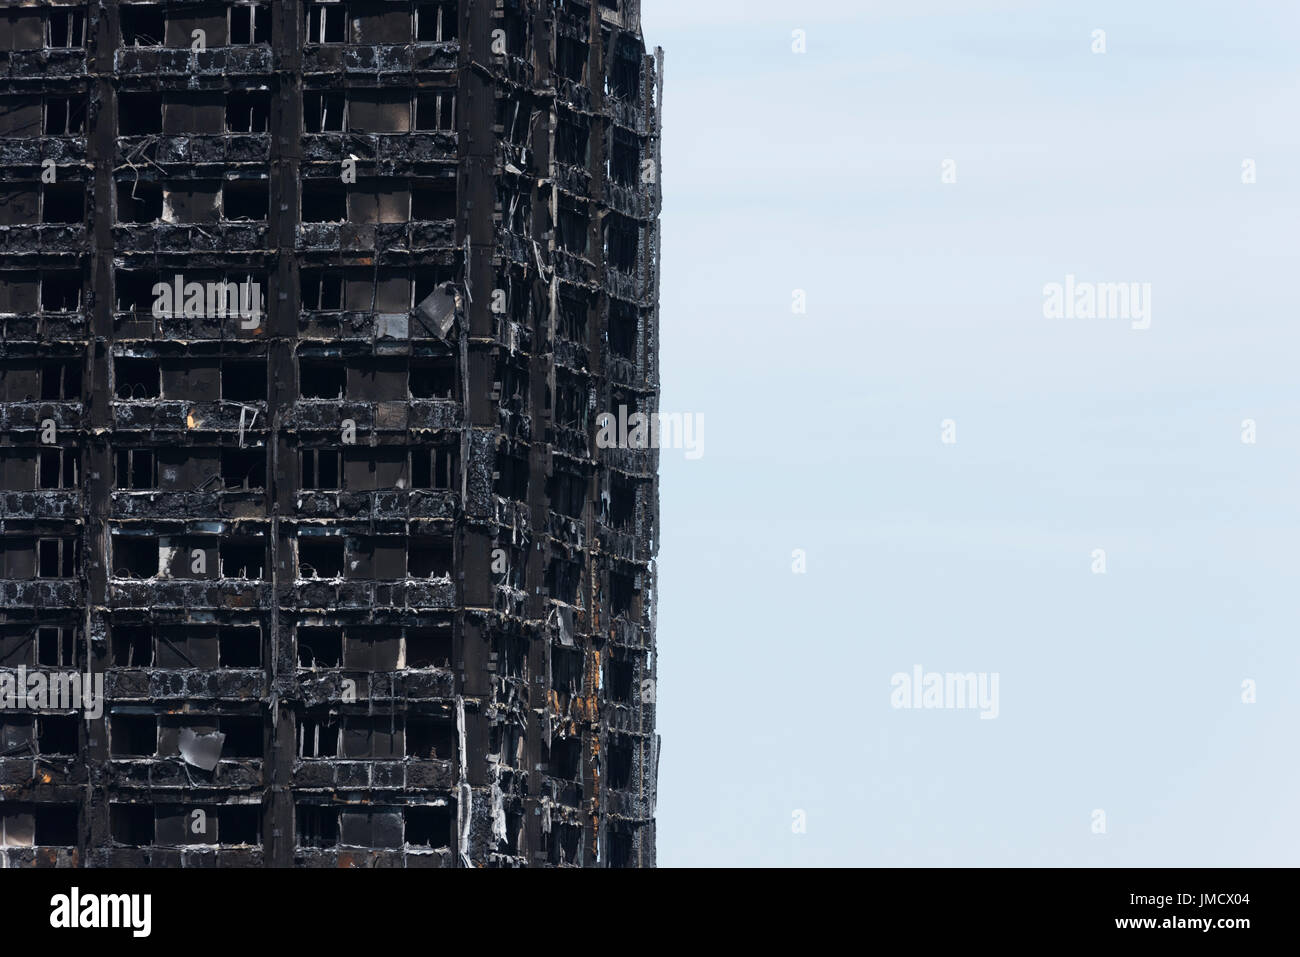 The charred remains of Grenfell Tower, Notting Hill, London, Britain. The 24 storey residential Tower block was engulfed in flames in the early hours  - Stock Image